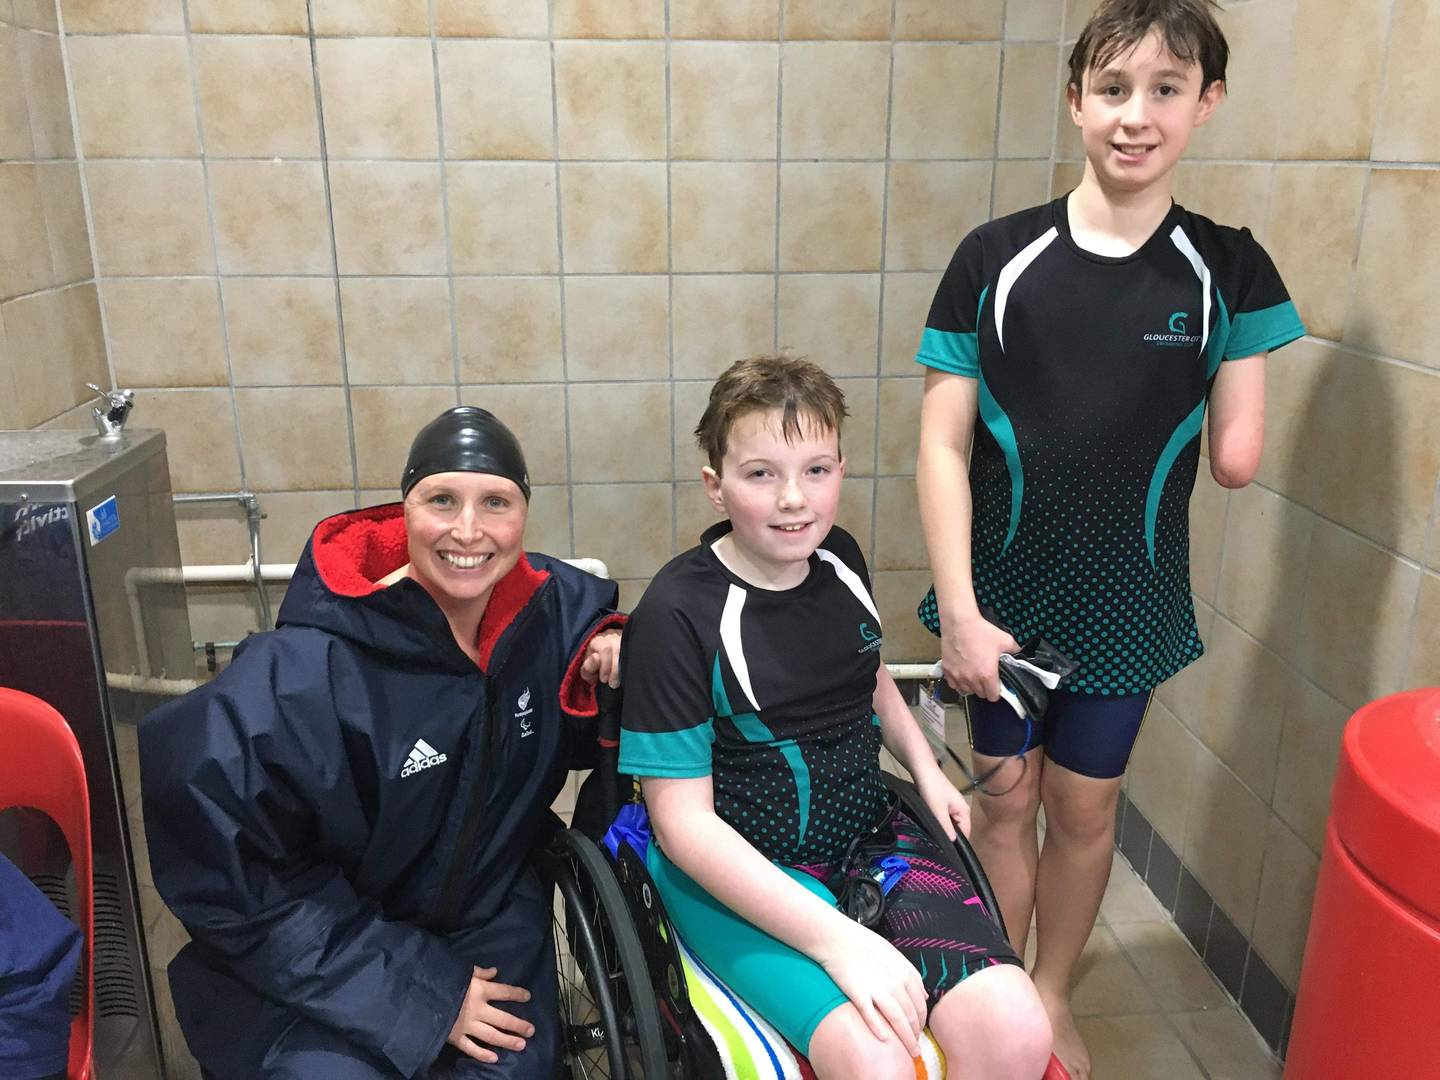 McKenzie with para-swimmer Steph Millward MBE on the left and his friend Jacob on the right.